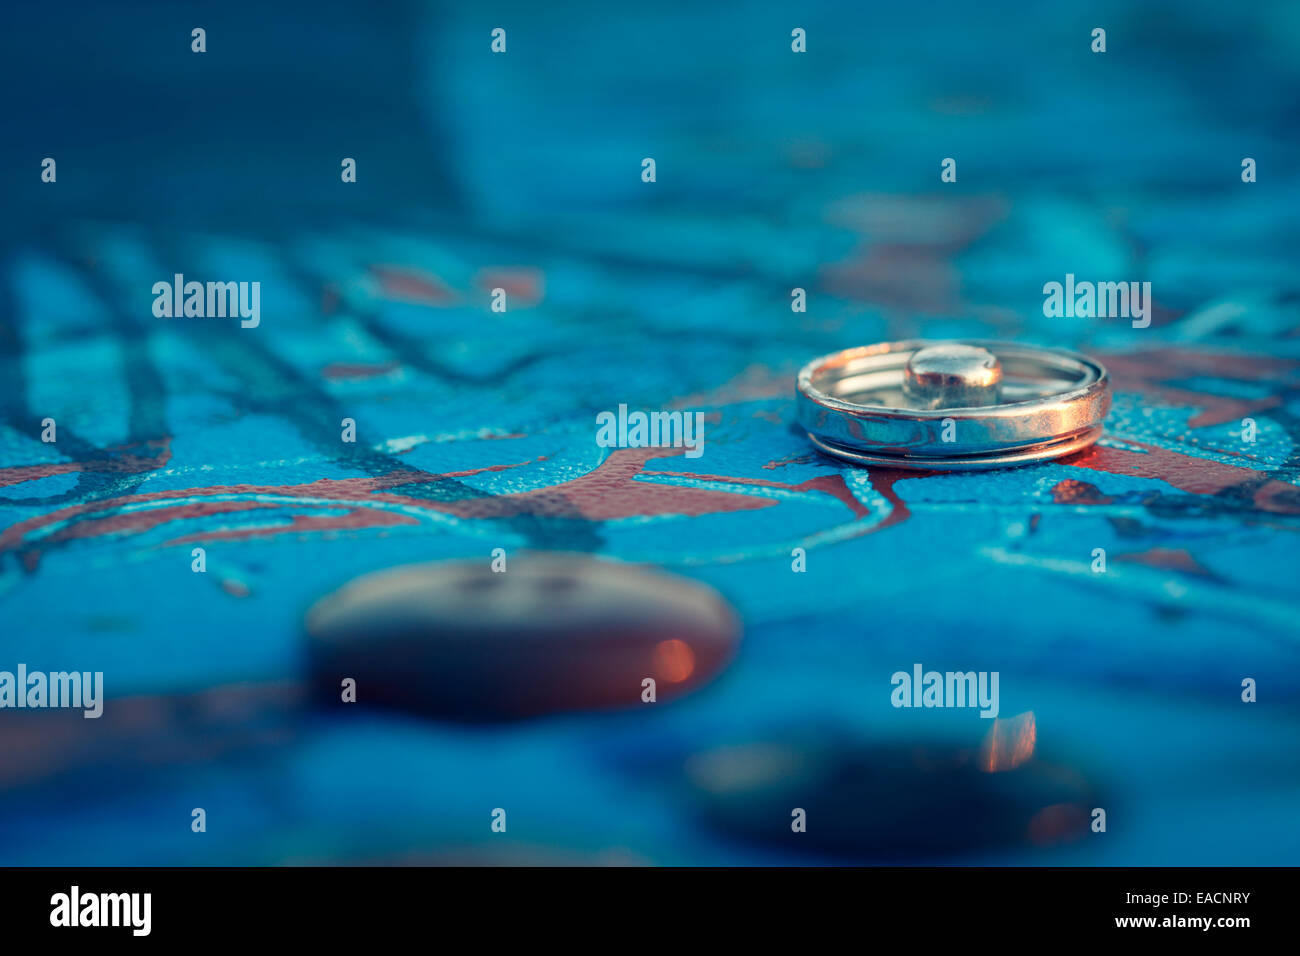 button canvas art blue abstract background - Stock Image